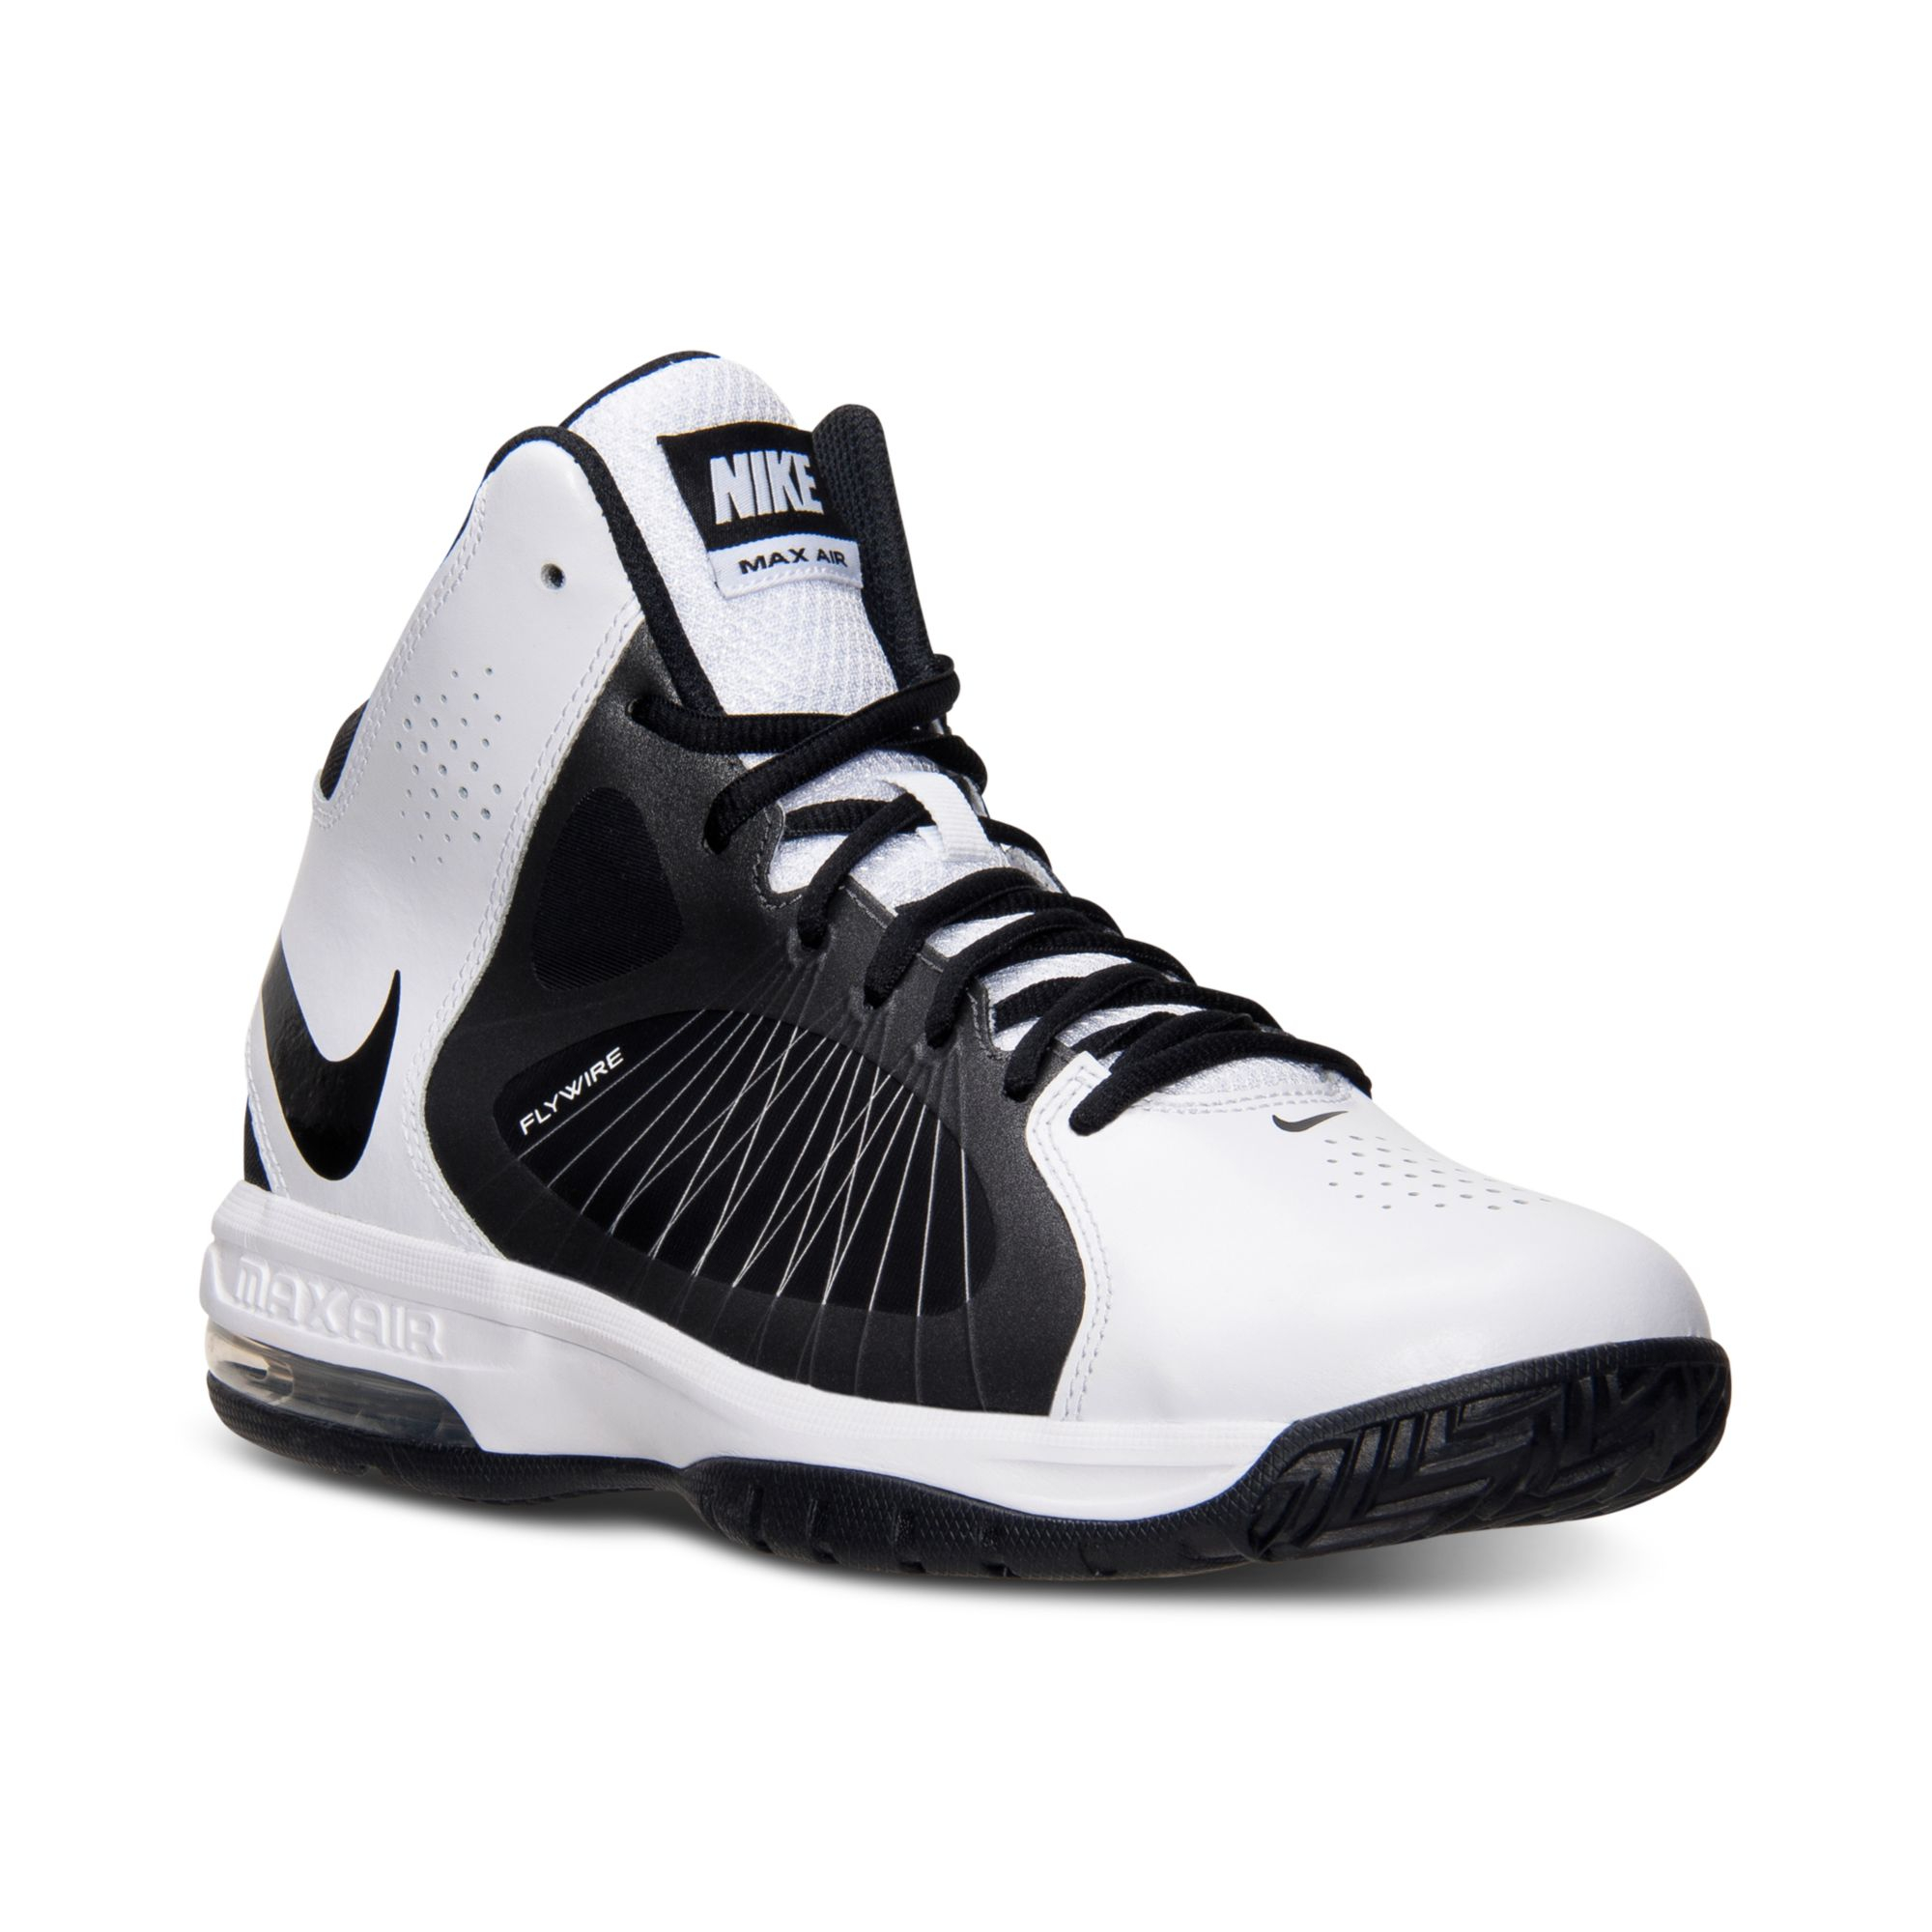 fb4417609140 Sneakers Air From Nike Actualizer Max Basketball Mens Lyst Ii VGMLzqSUp